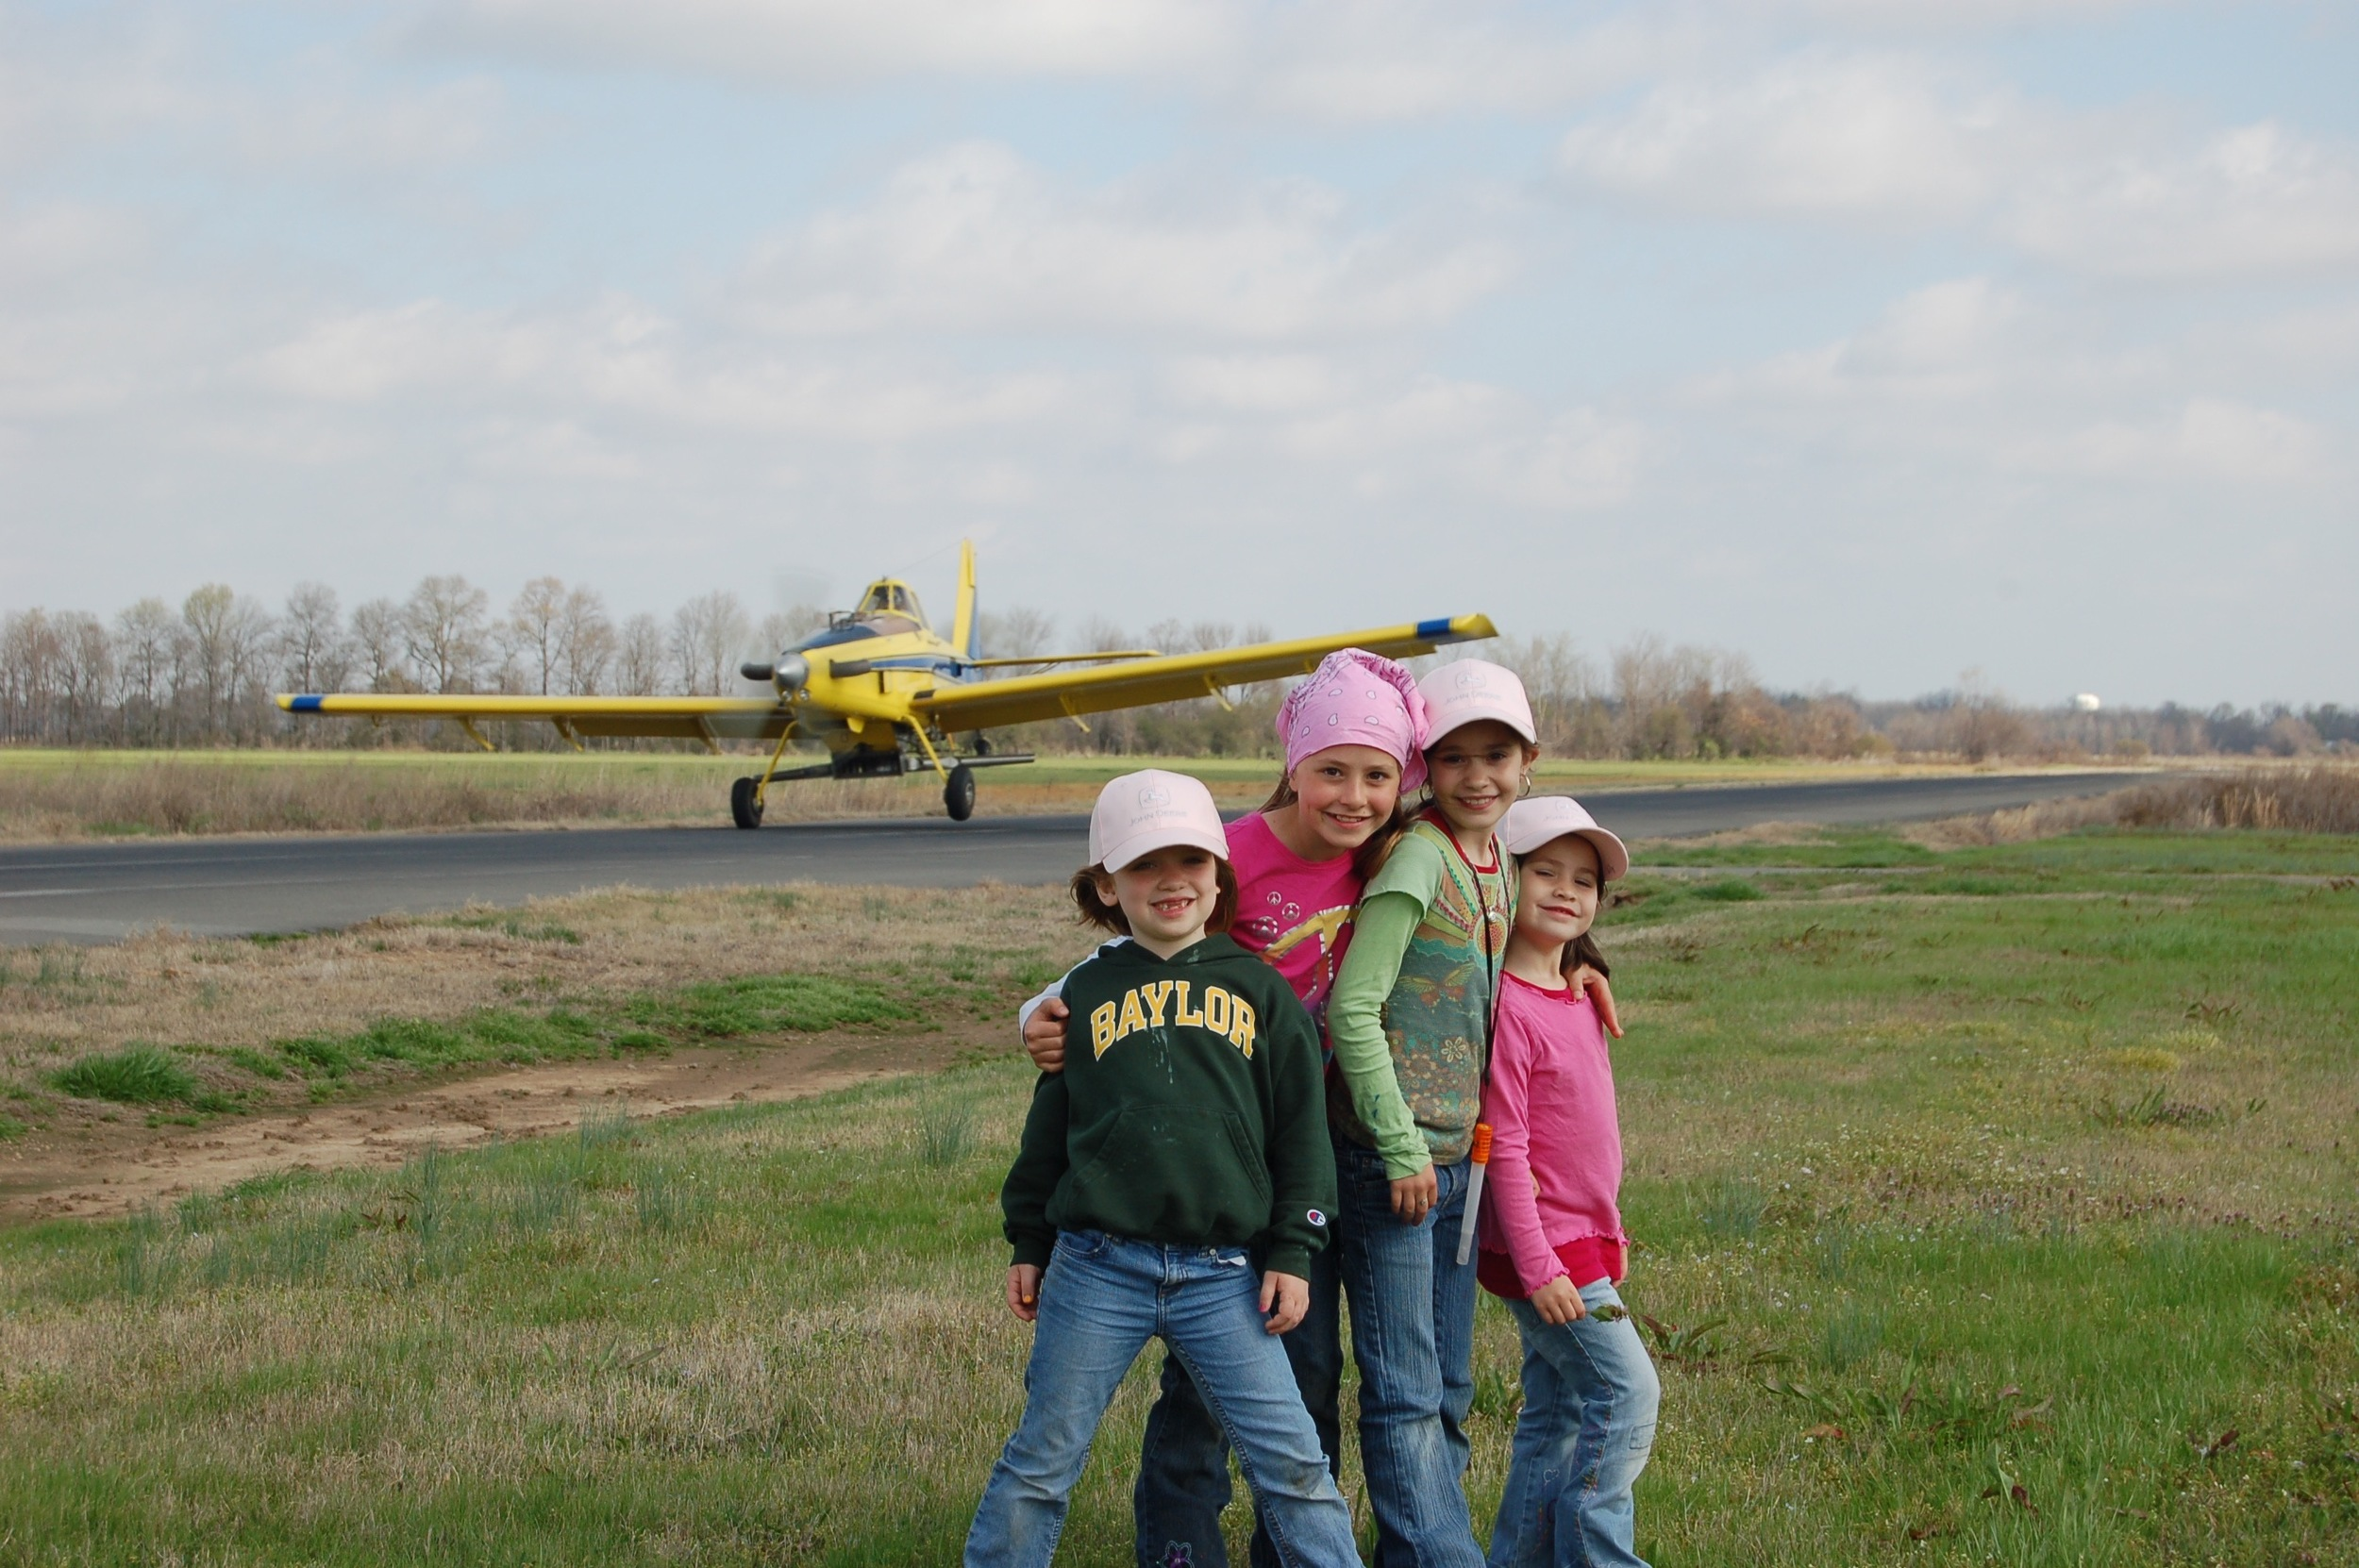 friends posing with the airplane as it loudly takes off